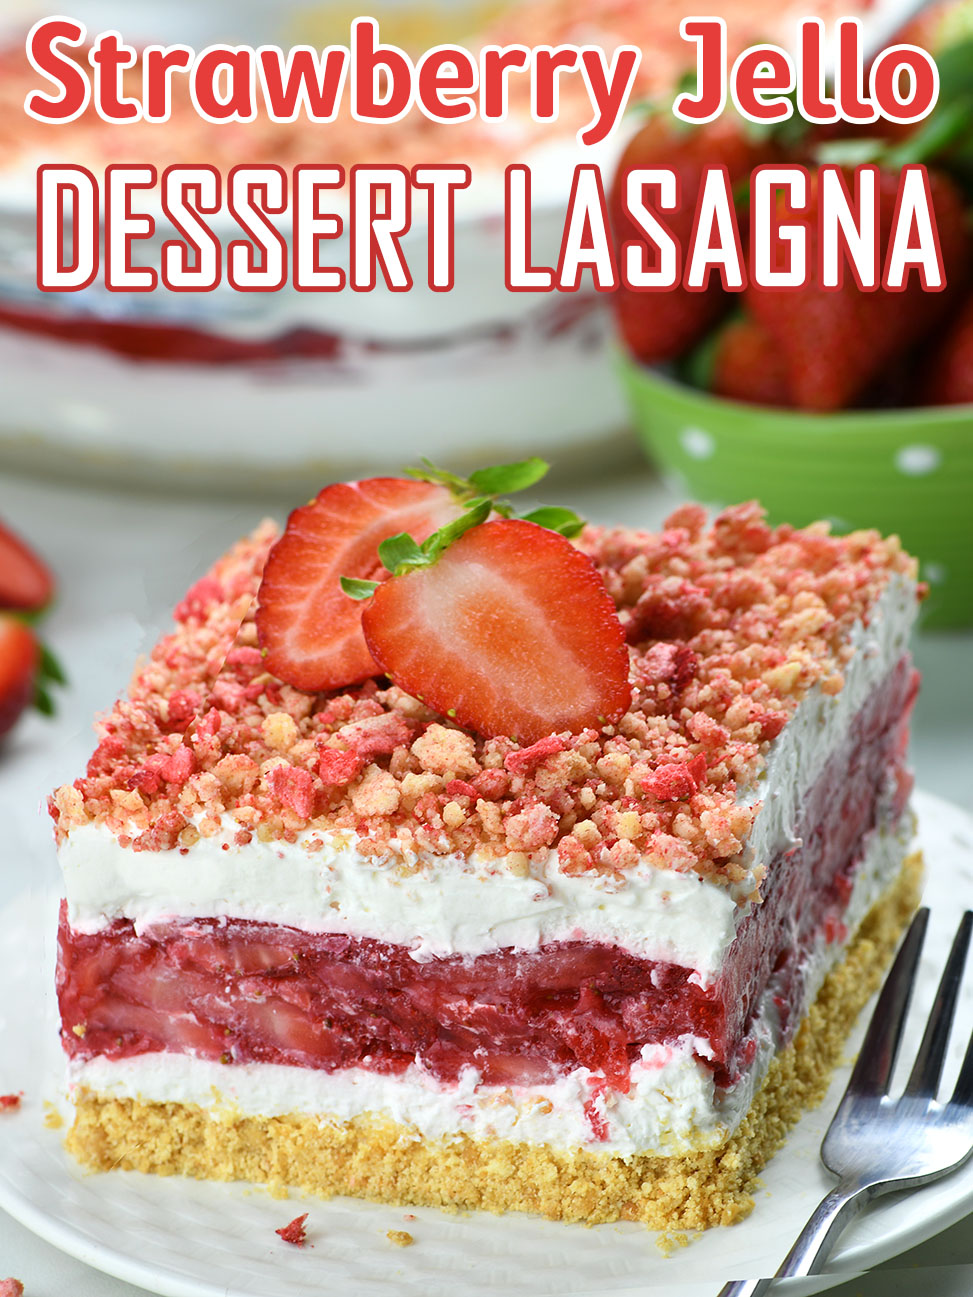 Strawberry Jello Lasagna - a layer of fresh berries stuck together with strawberry Jello, sandwiched between two fluffy layers of cream cheese and the whipped cream mixture.